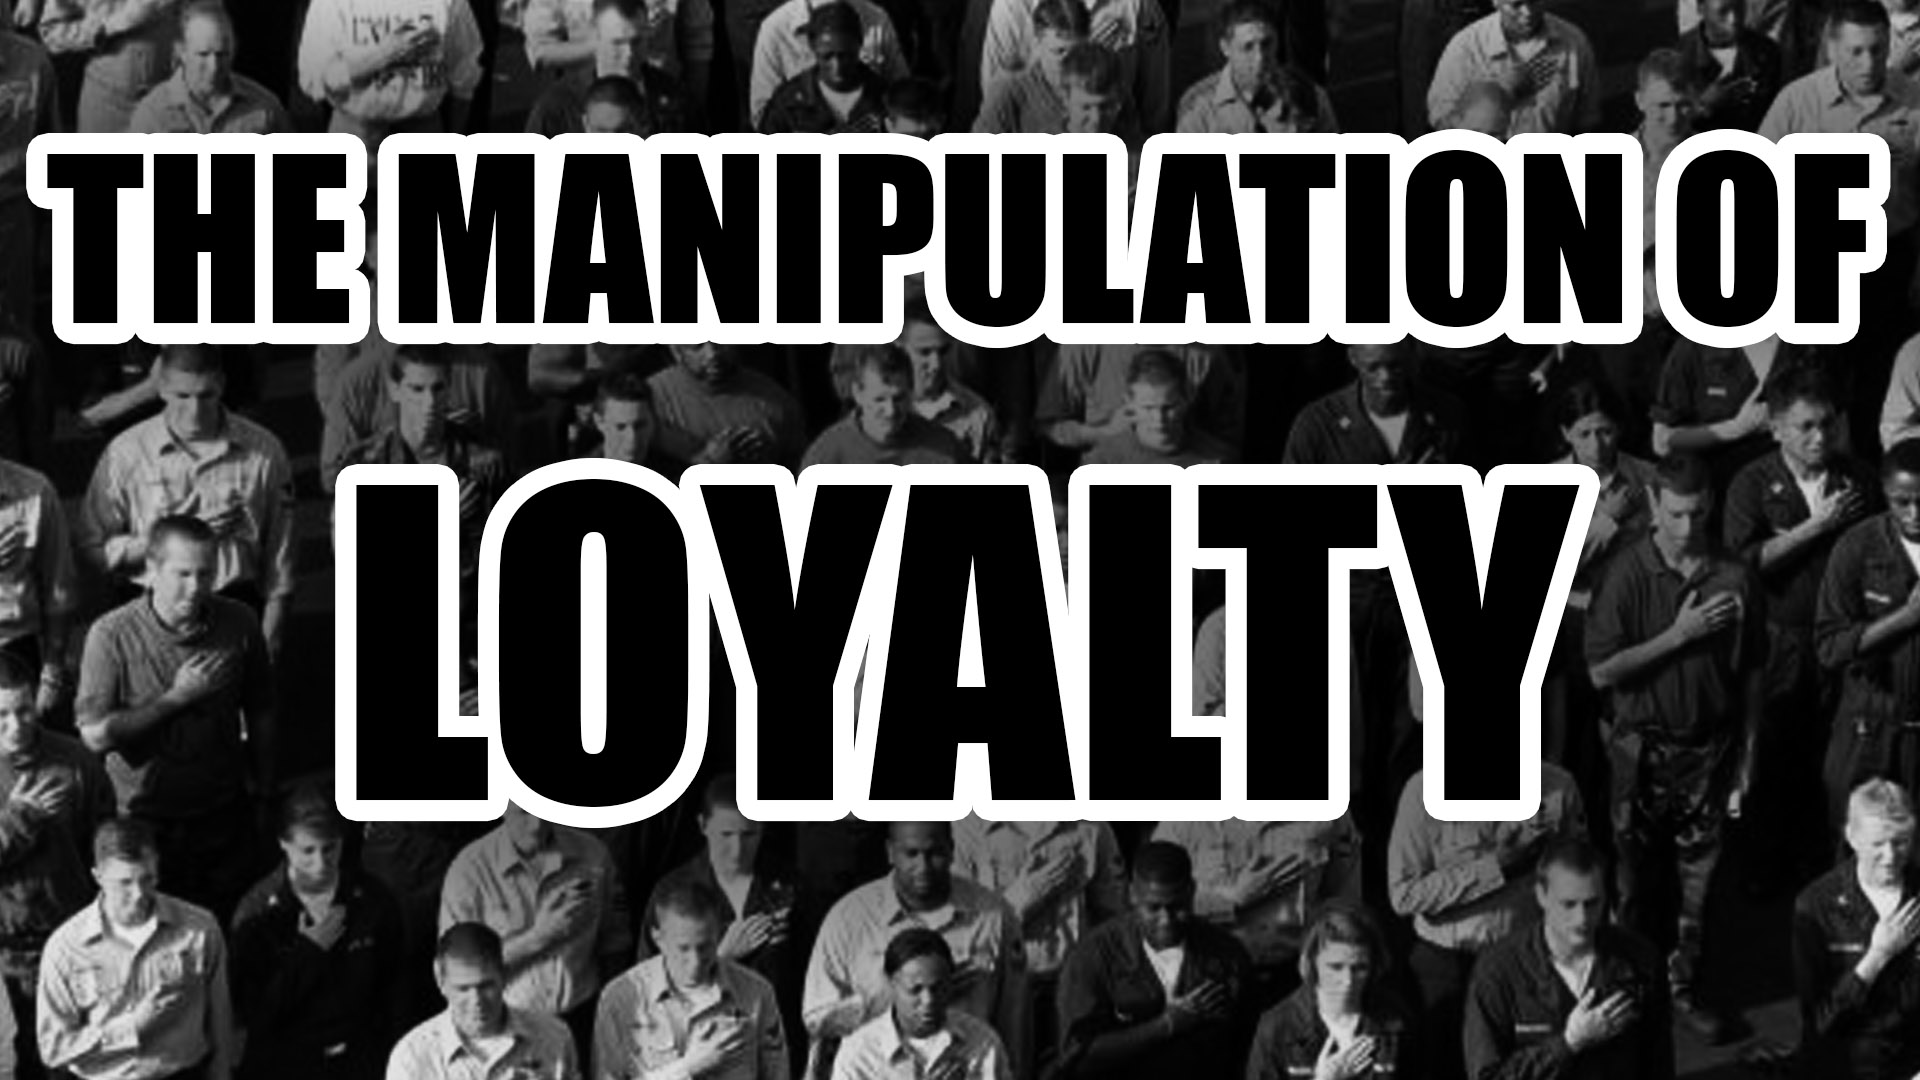 The Manipulation of Loyalty